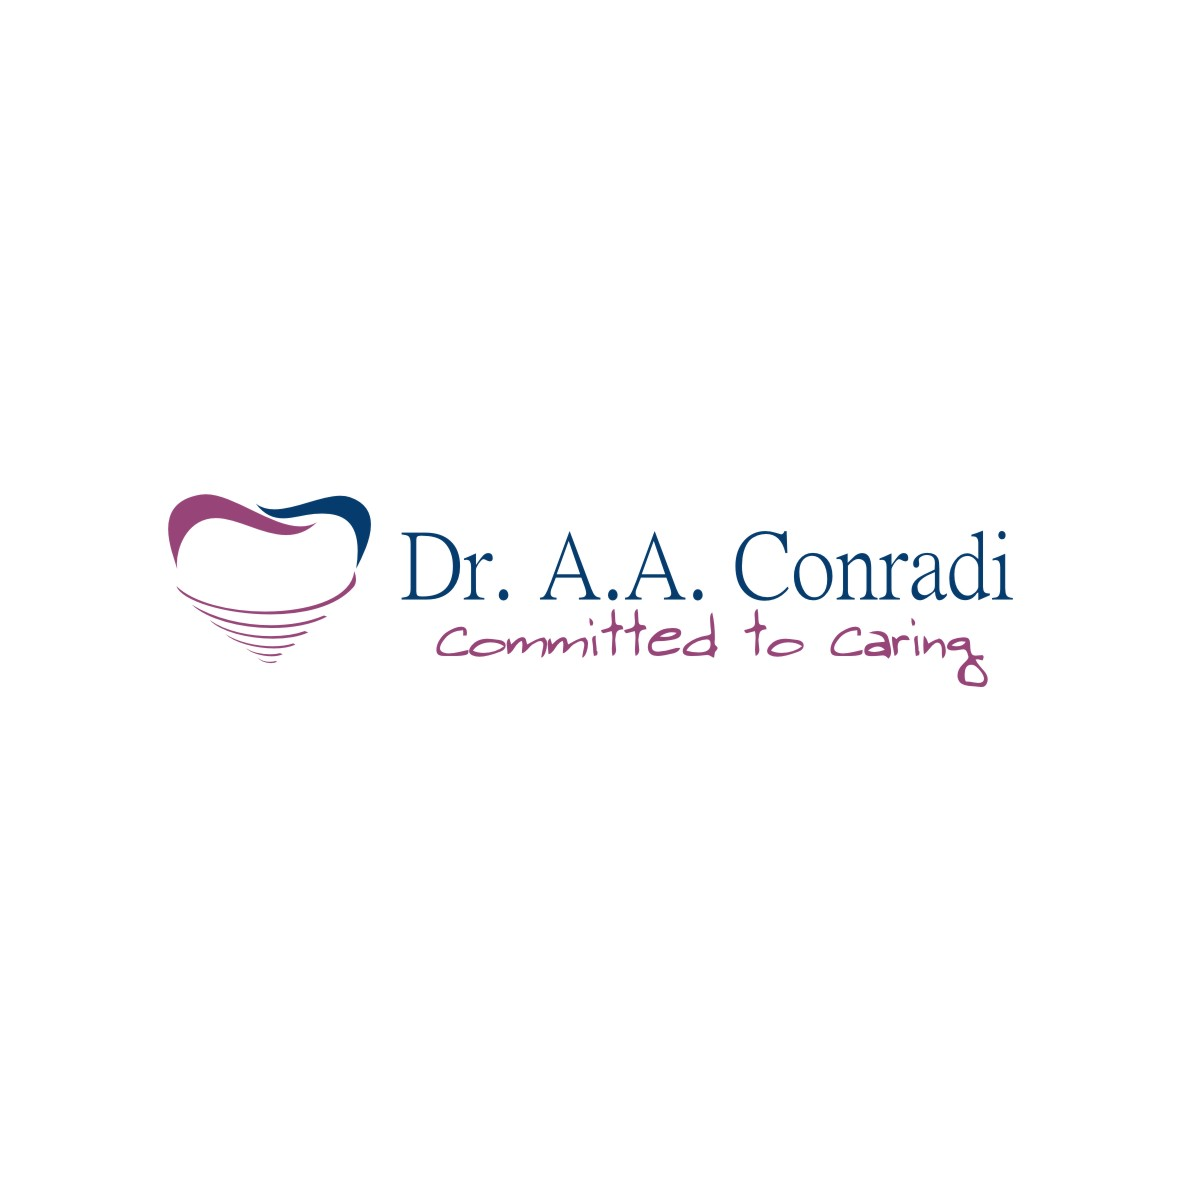 Logo Design by arteo_design - Entry No. 135 in the Logo Design Contest Unique Logo Design Wanted for Dr. A.A. Conradi.